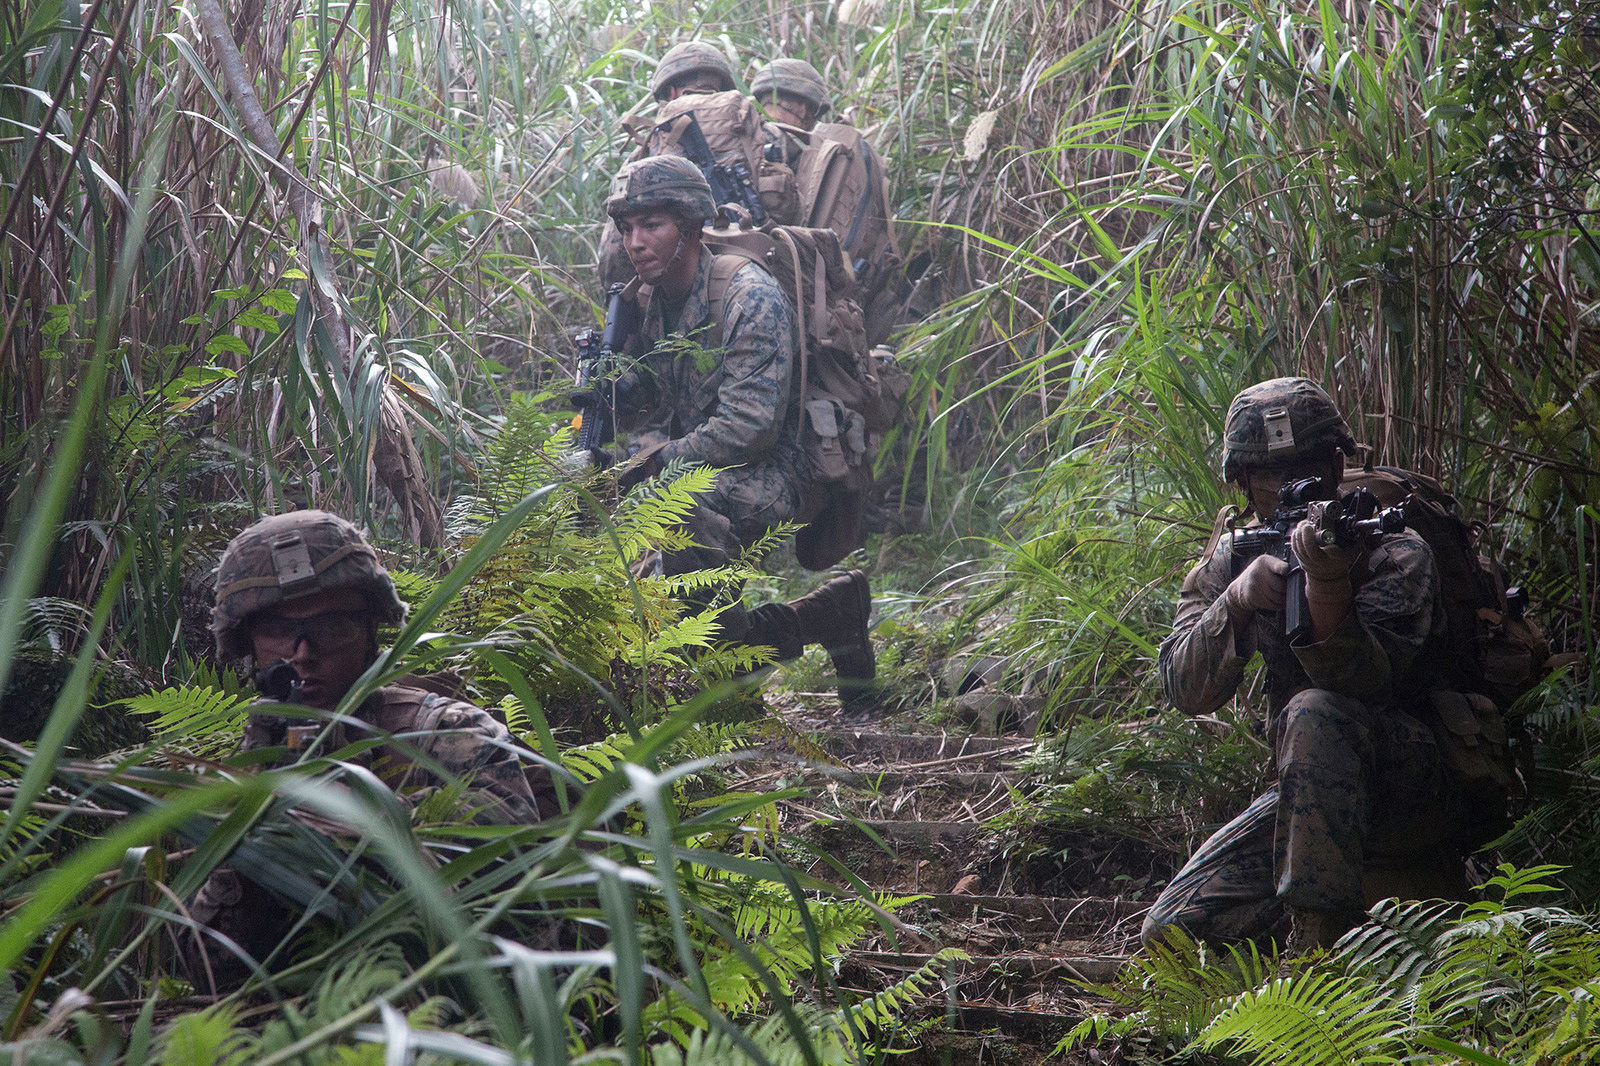 Marines provide security after conducting simulated village raids at the Jungle Warfare Training Center in Okinawa. Japan, on Dec. 6, 2017, during the 3rd Marine Division Annual Squad Competition. (Cpl. Carl King/Marine Corps)